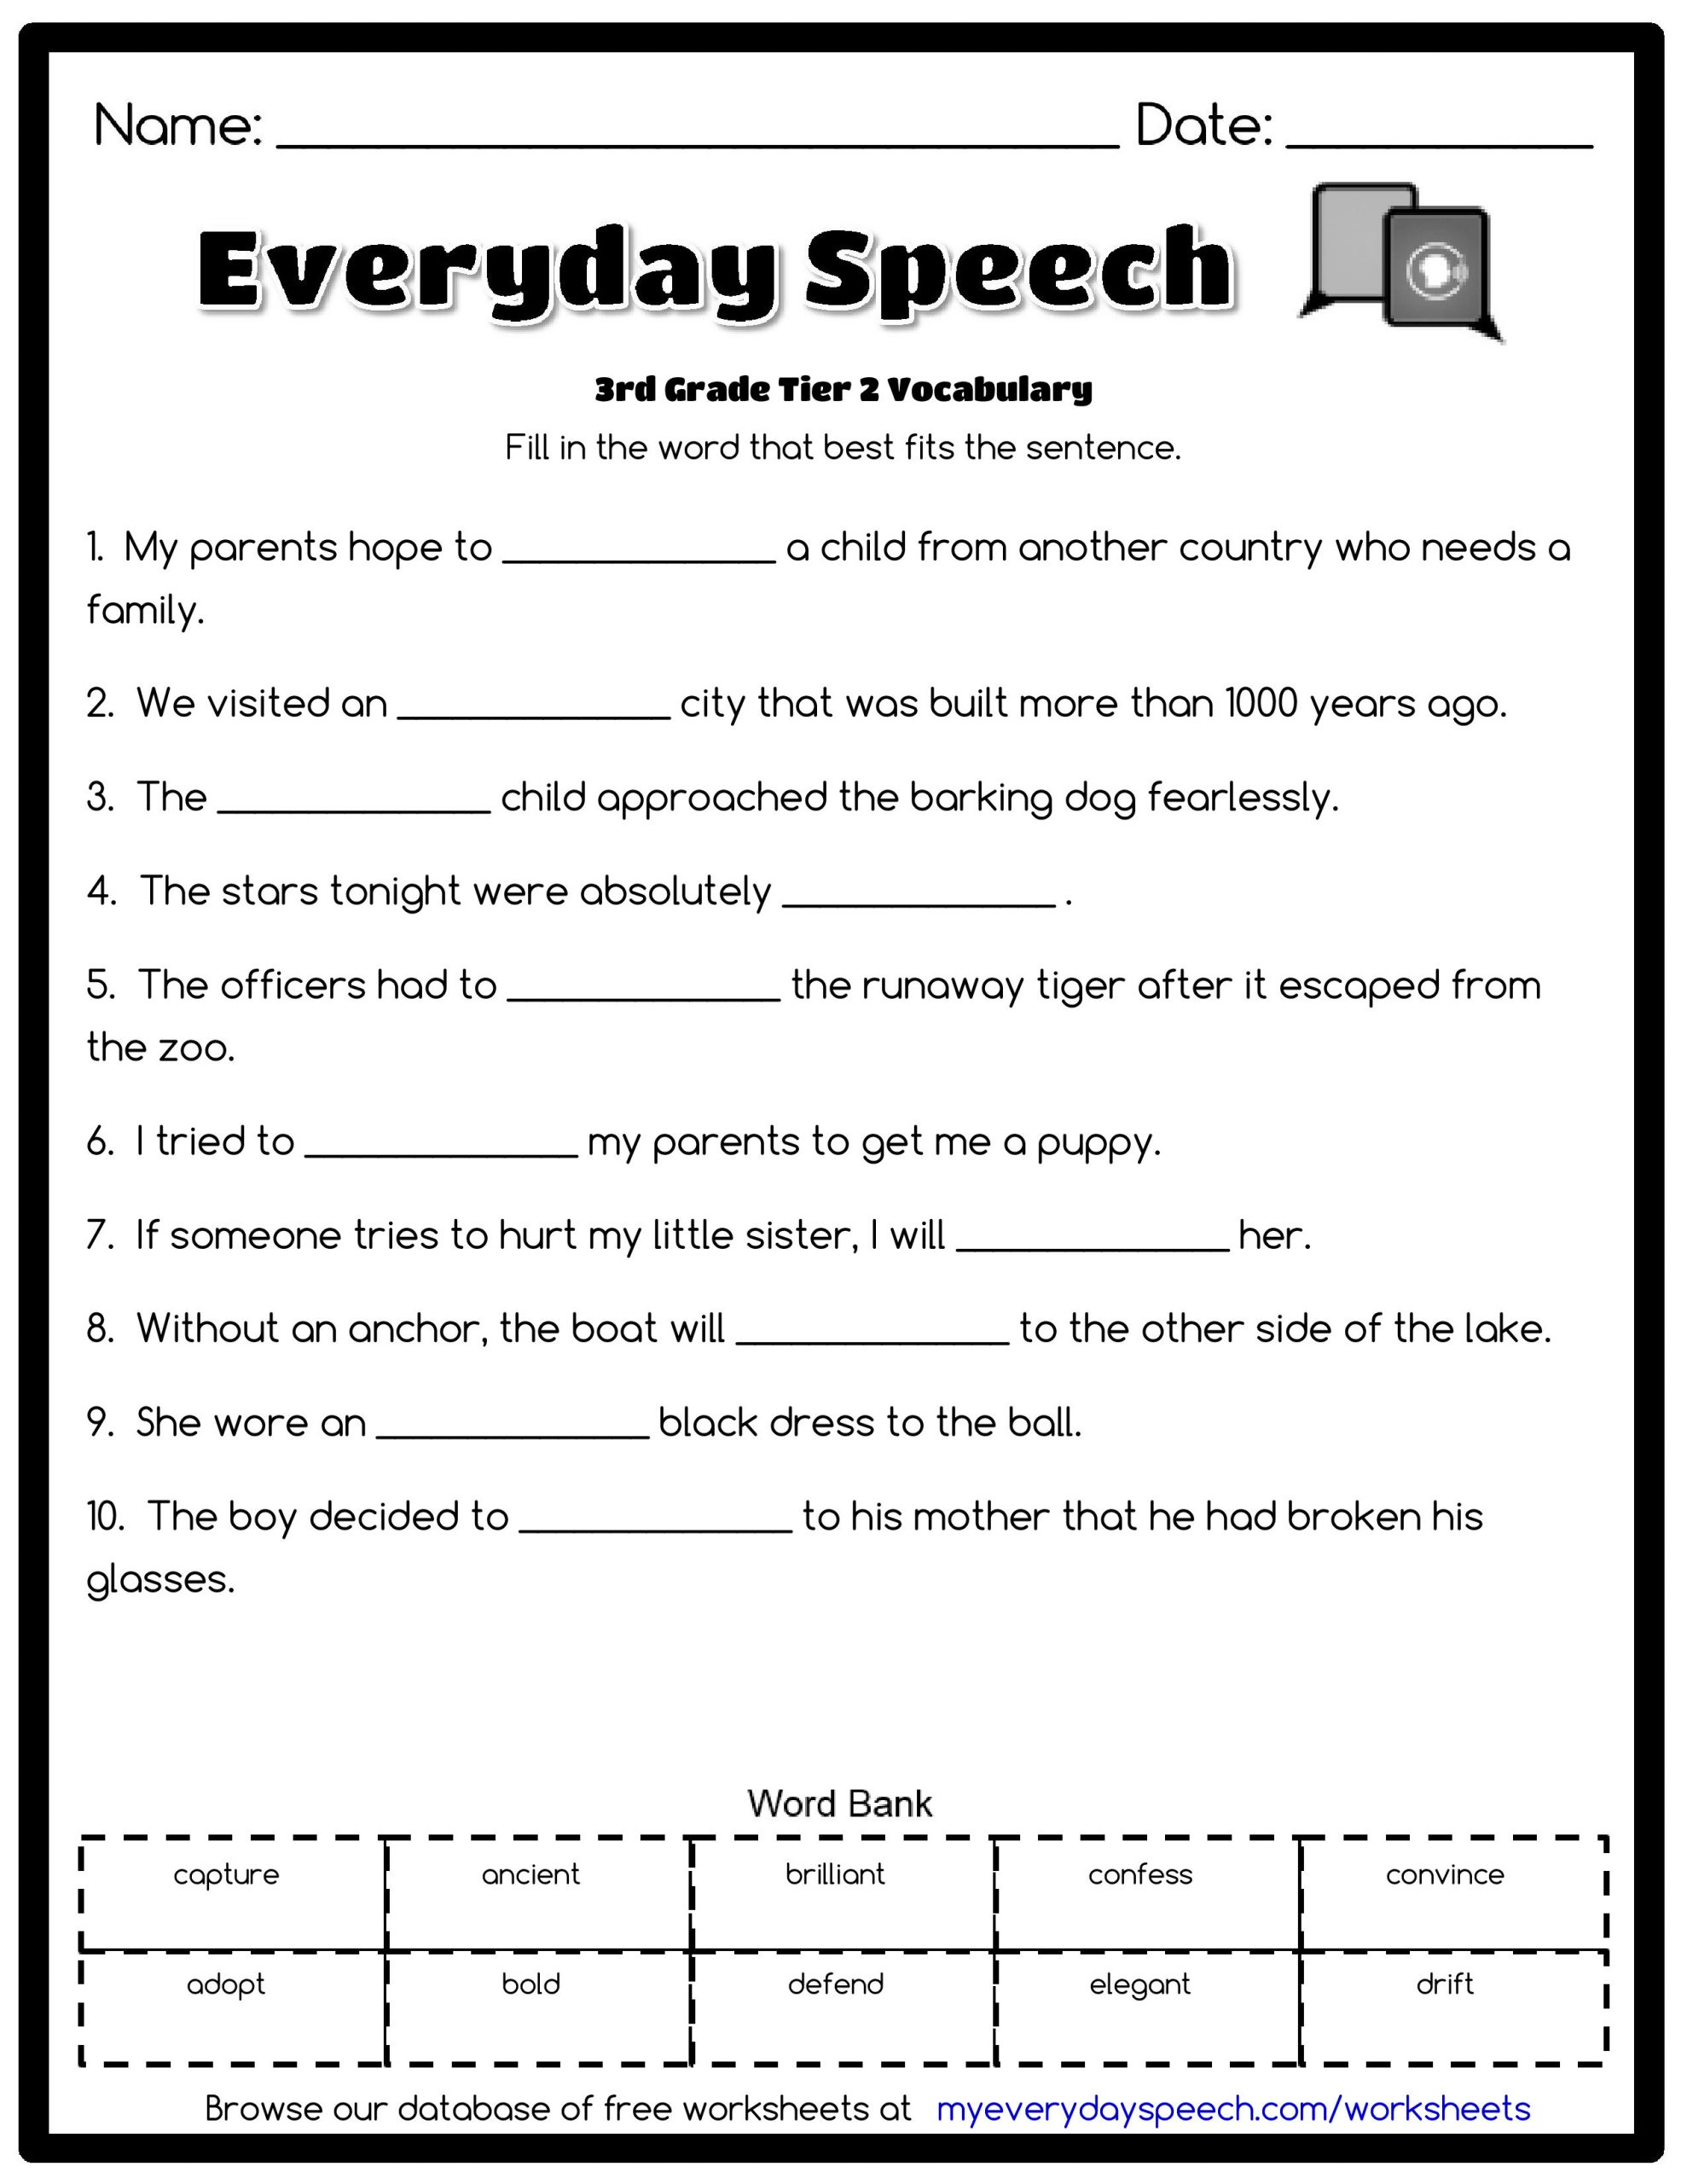 Spelling Worksheets 3rd Grade 3rd Grade Vocabulary Worksheets for Download 3rd Grade